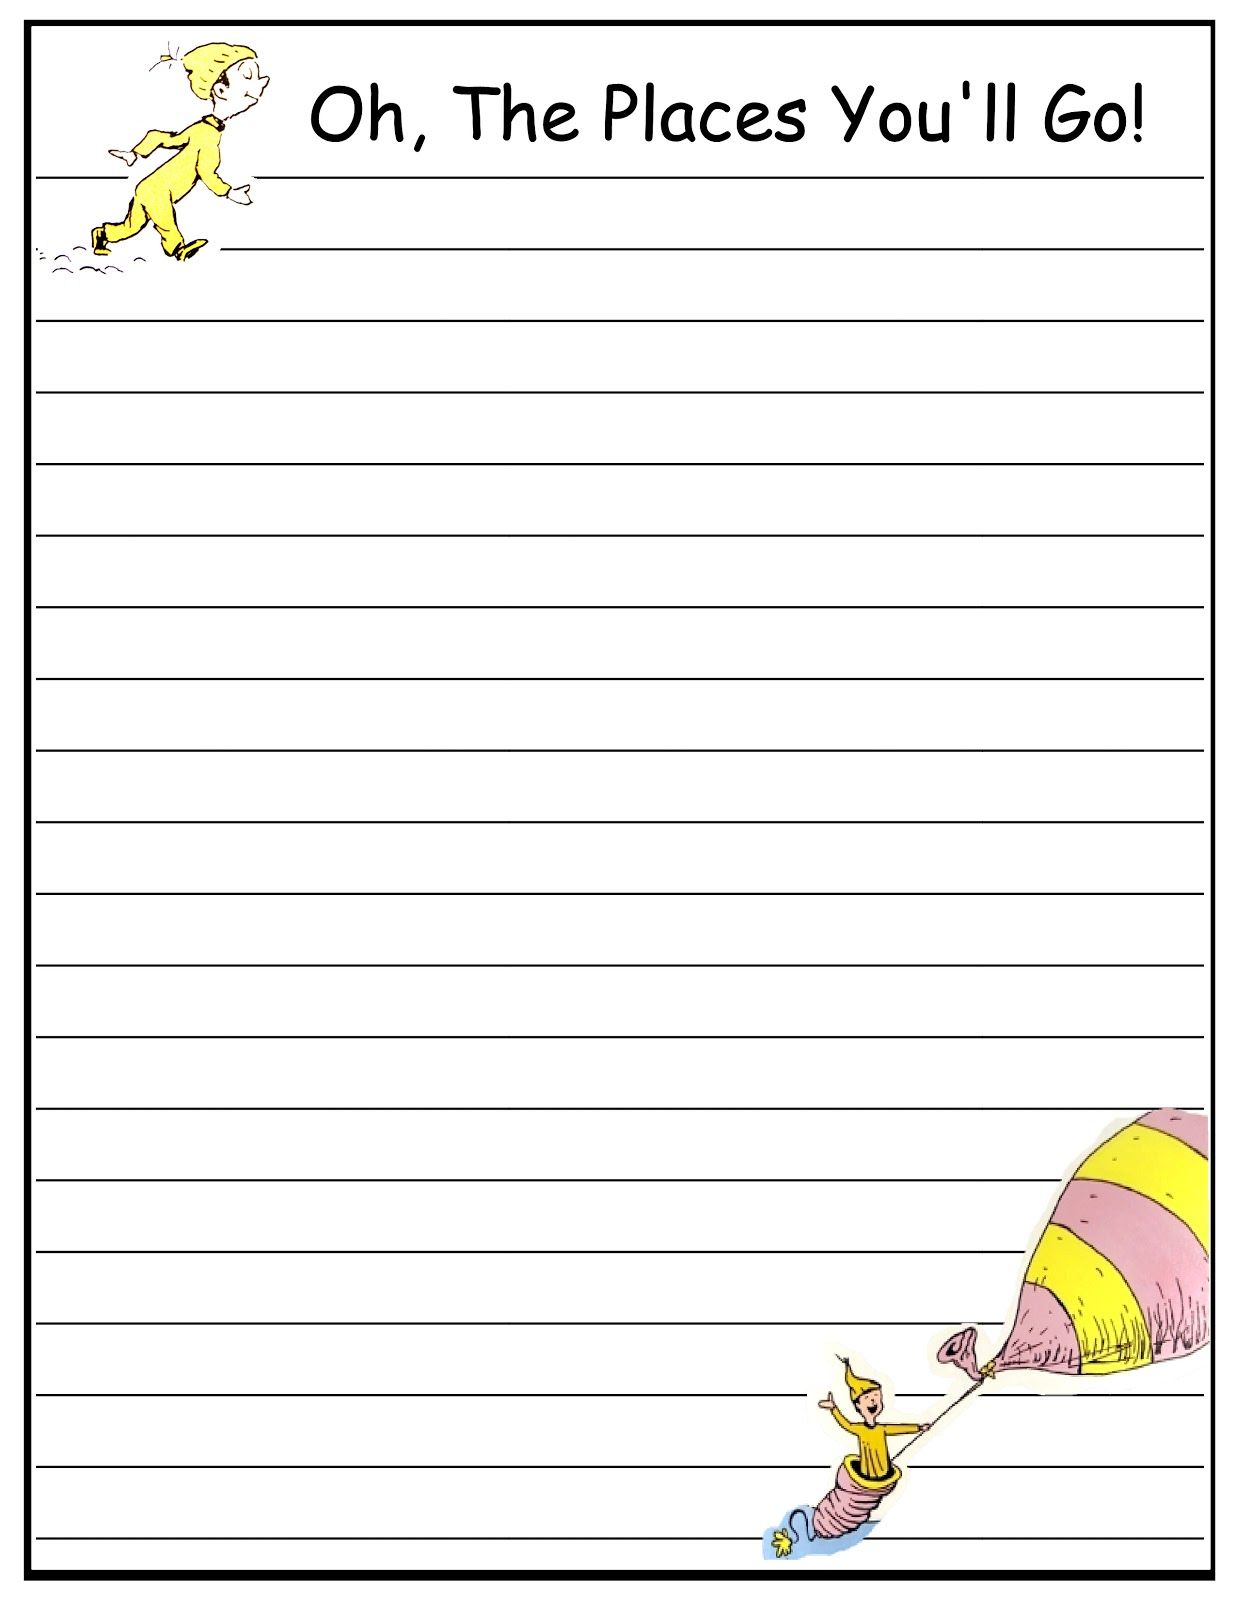 dr seuss sneetches writing activity bilingual english and spanish dr seuss paper dr seuss writing papers